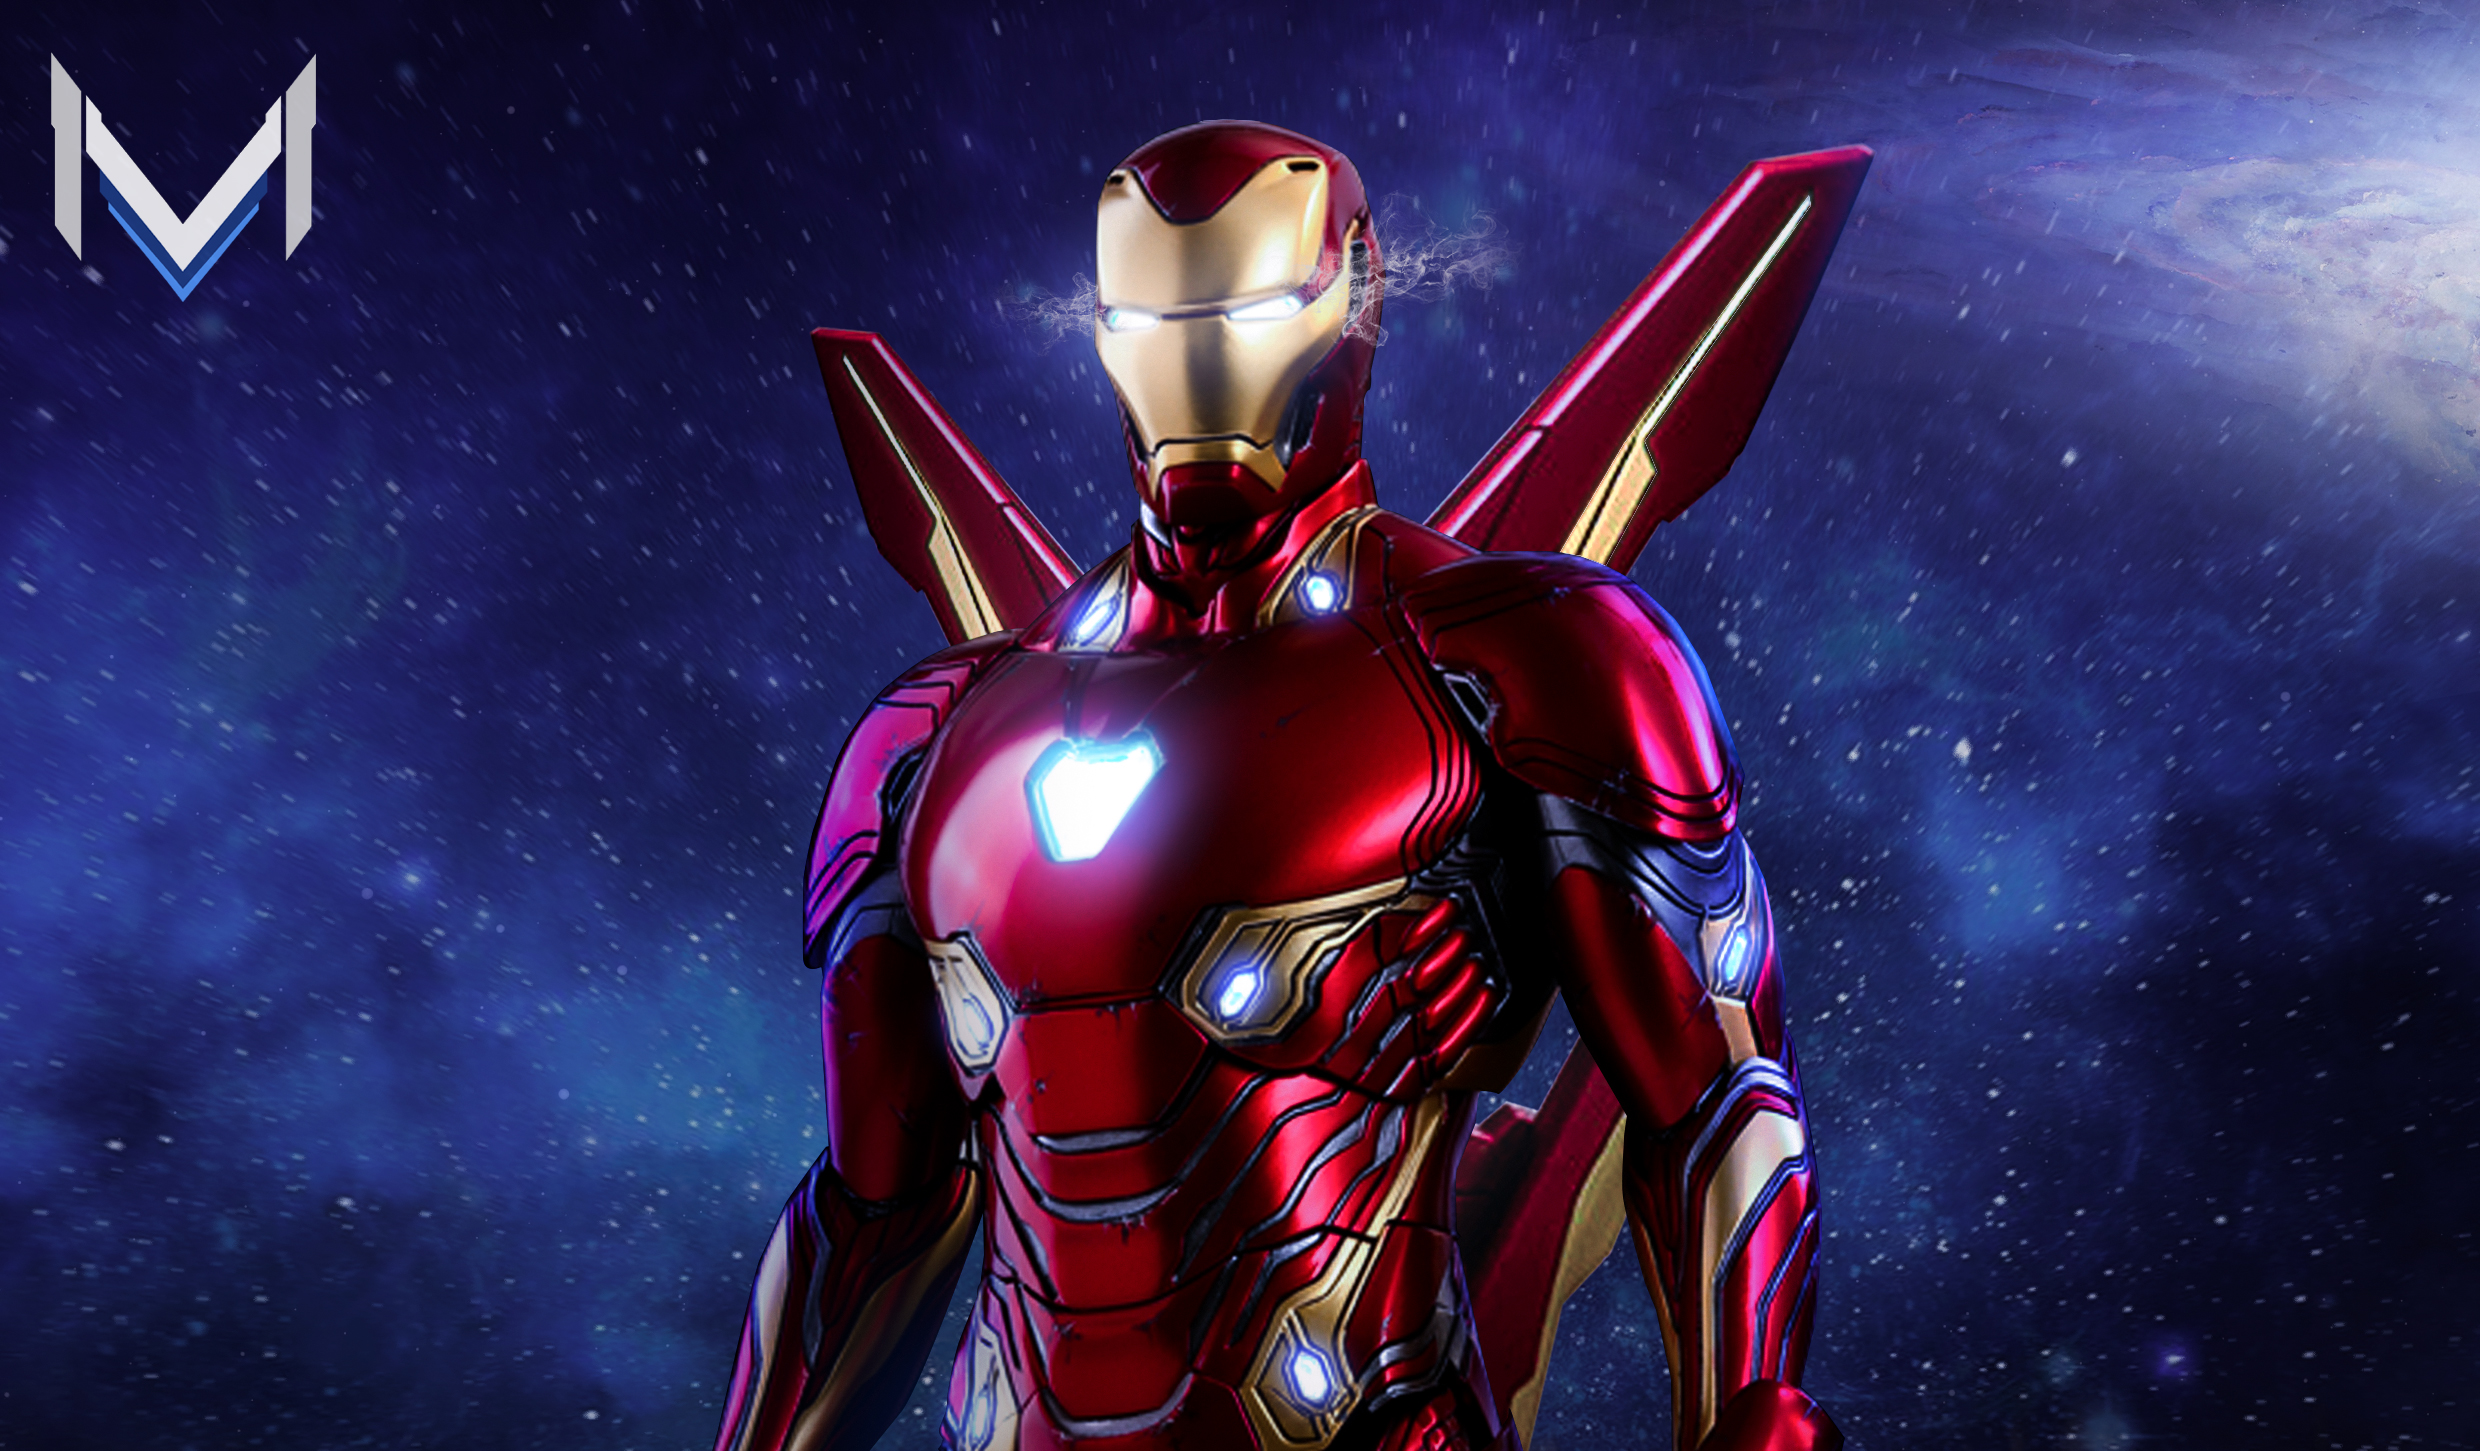 Iron Man Infinity War 4k Wallpapers Wallpaper Cave